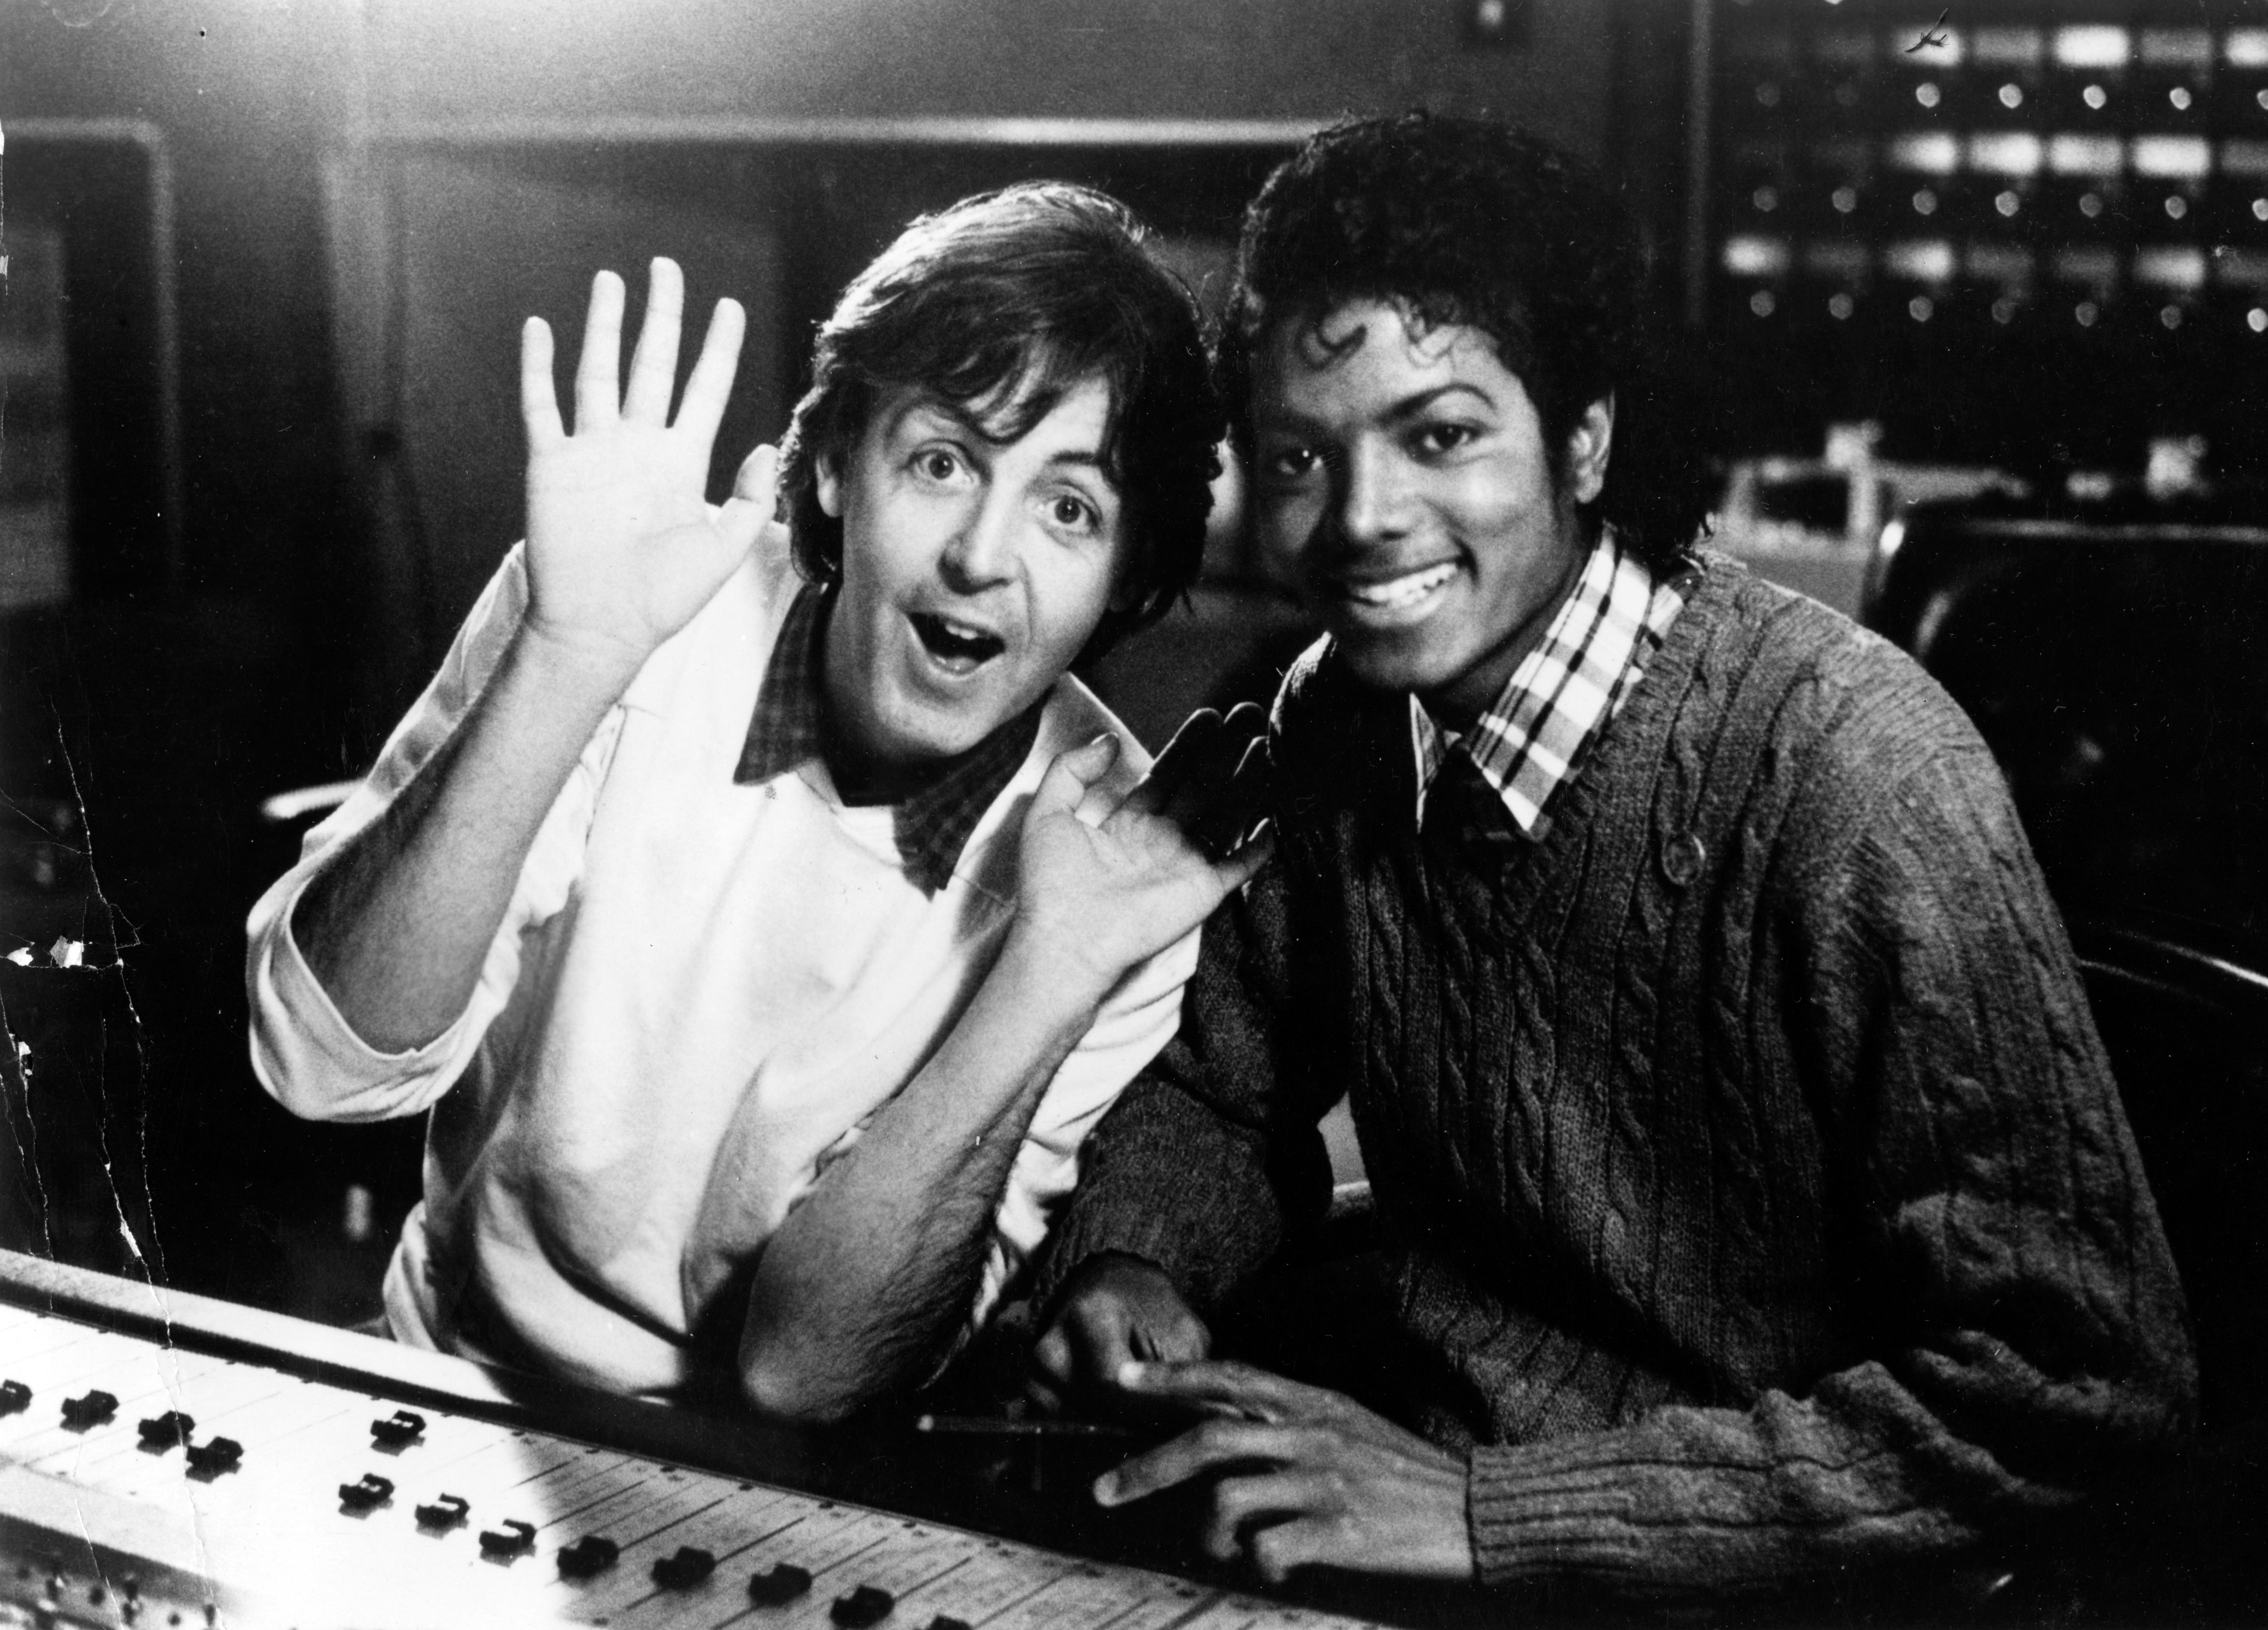 African American musician Michael Jackson and Paul McCartney in the studio, 1980. | Getty Images